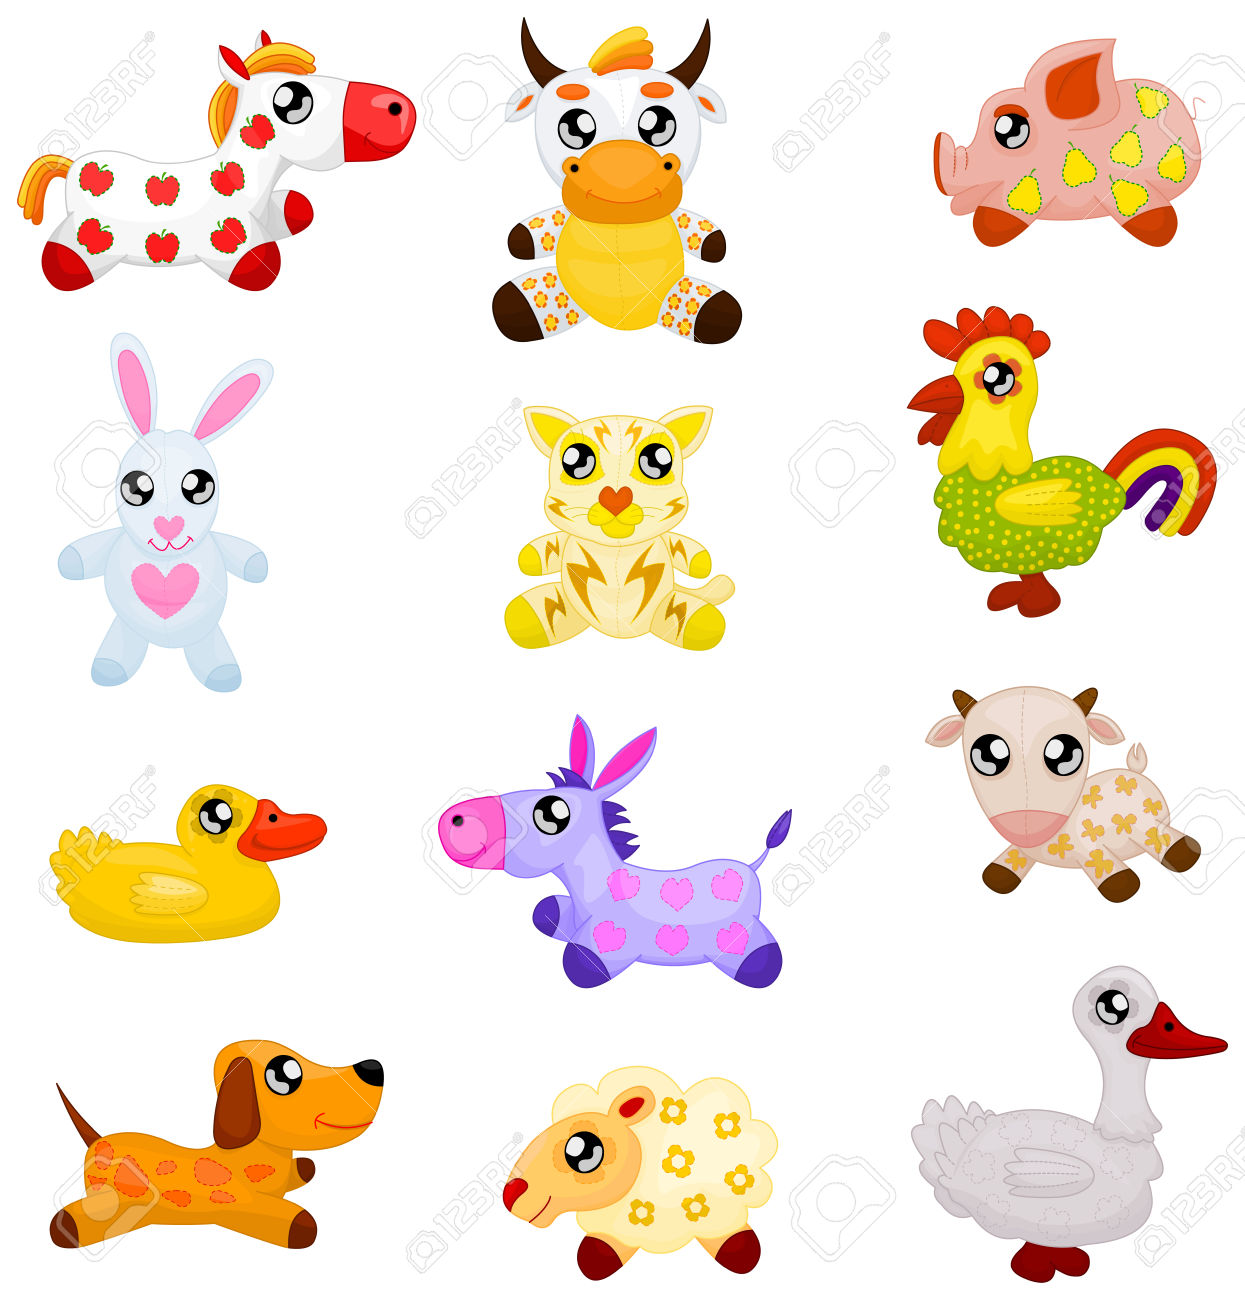 Domestic Toy Animals Royalty Free Cliparts, Vectors, And Stock.